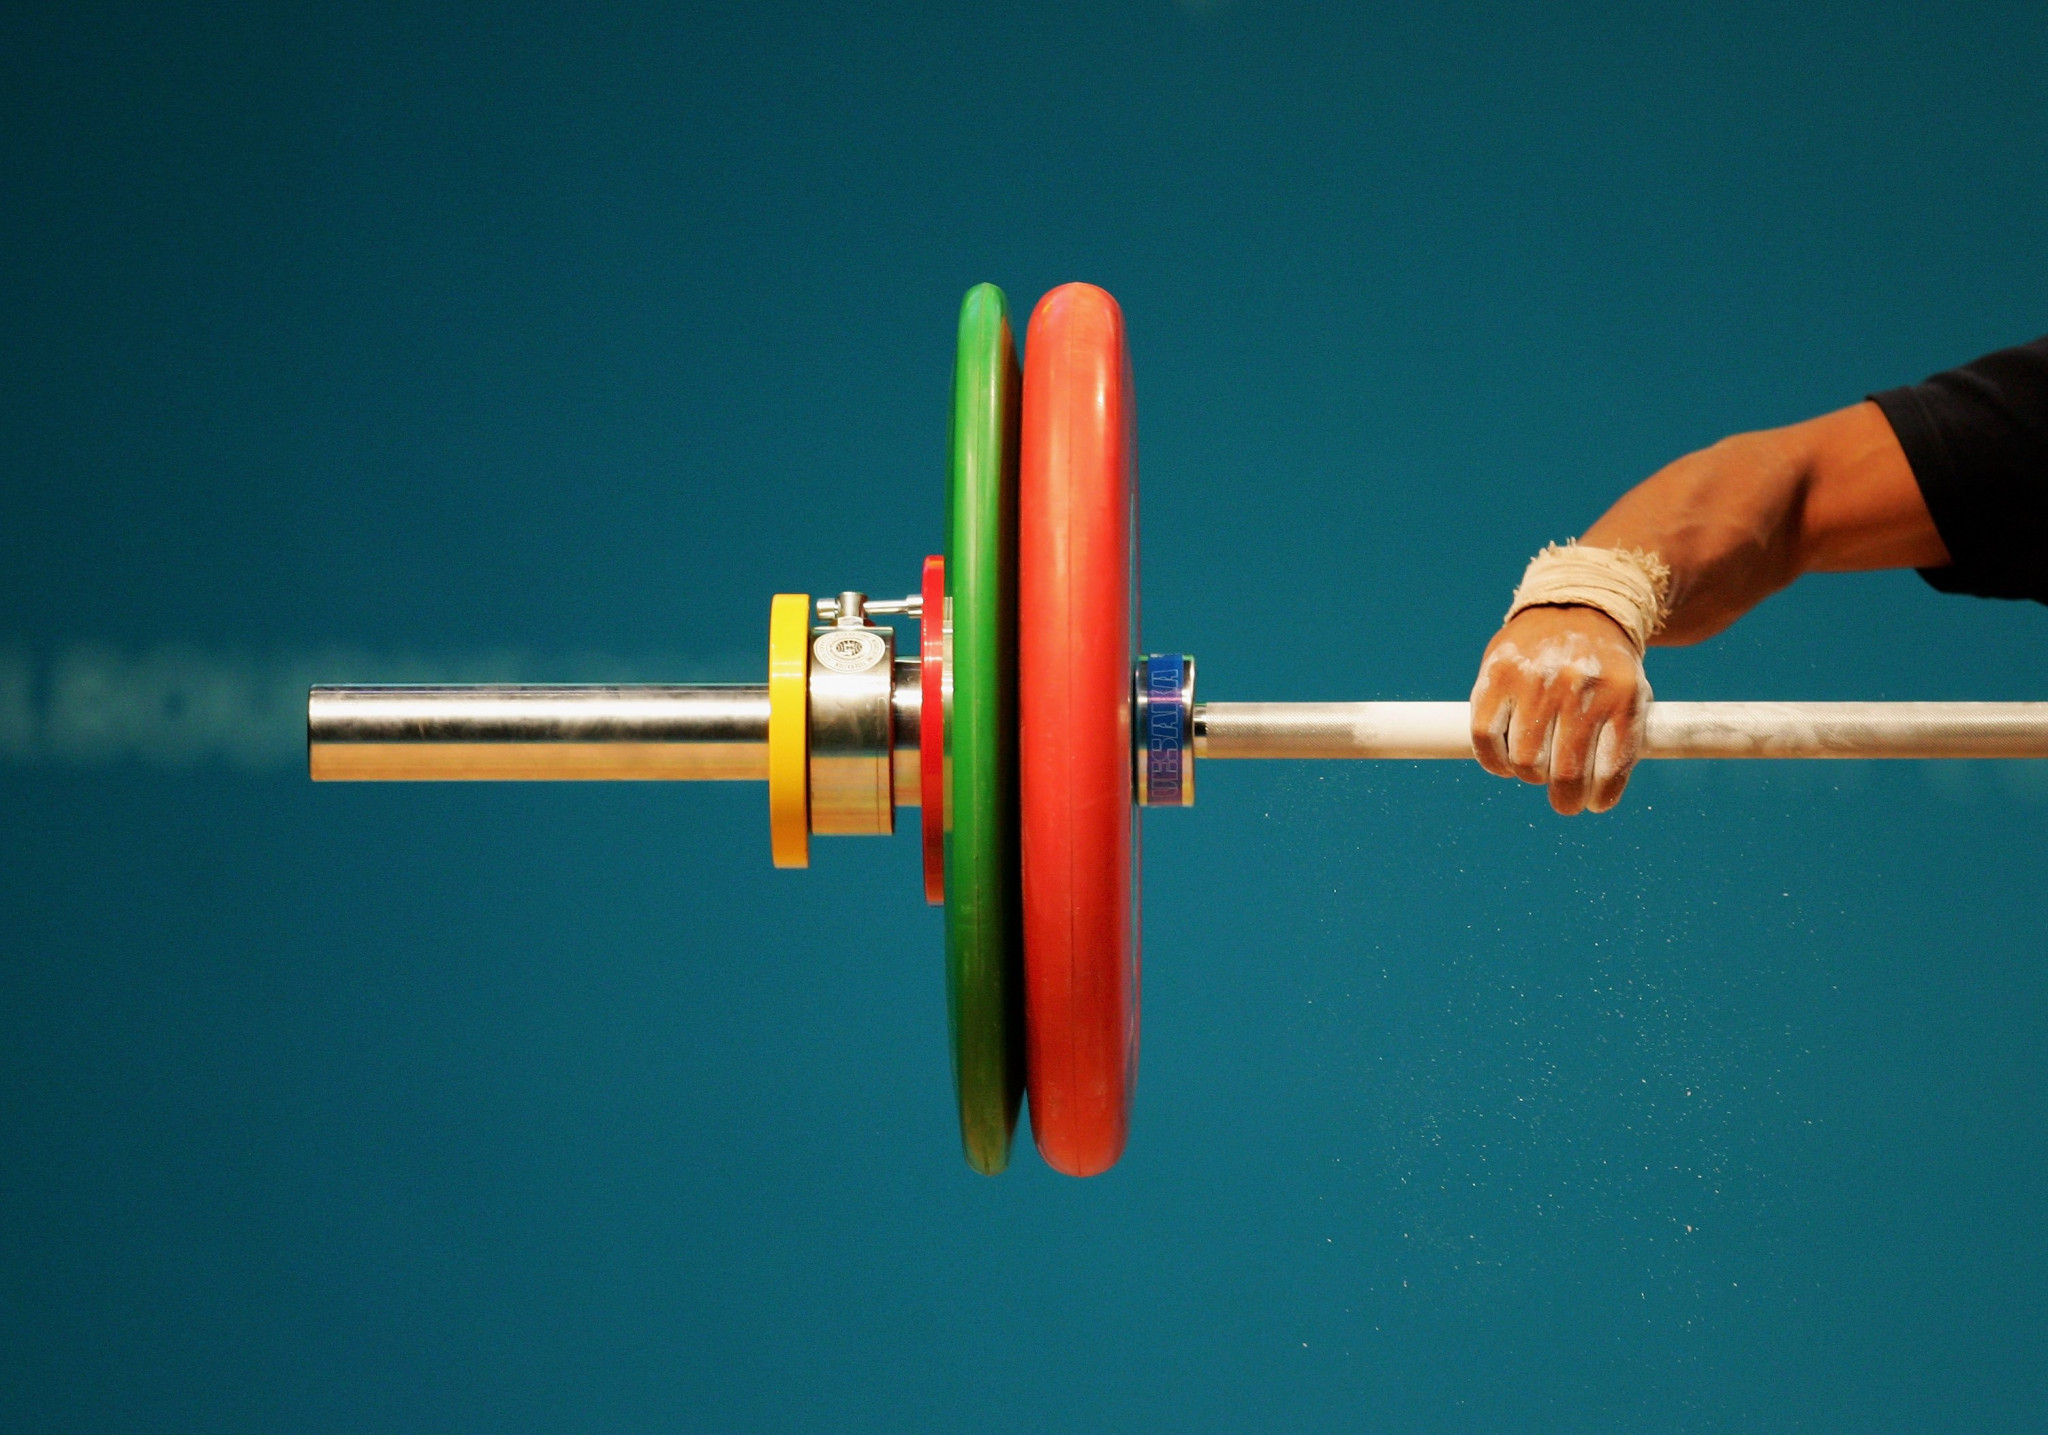 Belarus weightlifter provisionally suspended after positive doping test